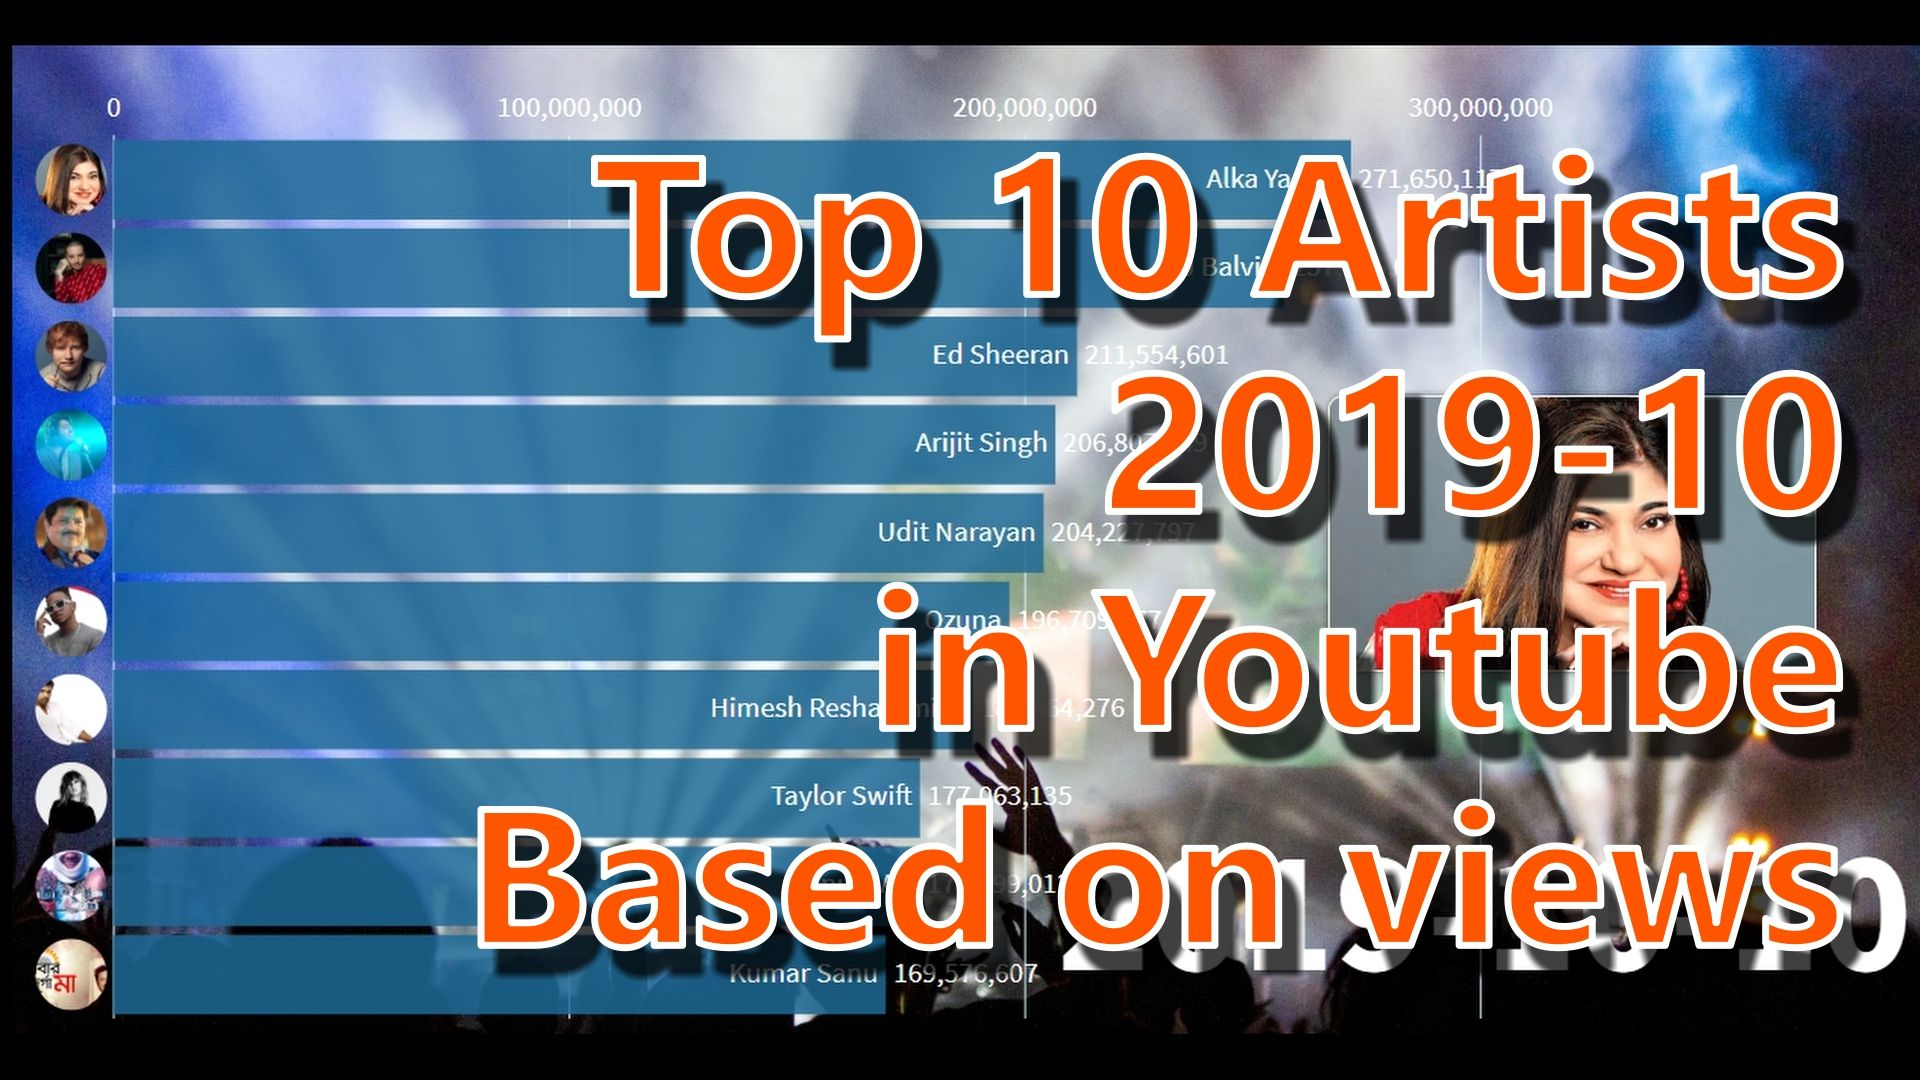 youtube song top 10 2019 201910 20191010 music